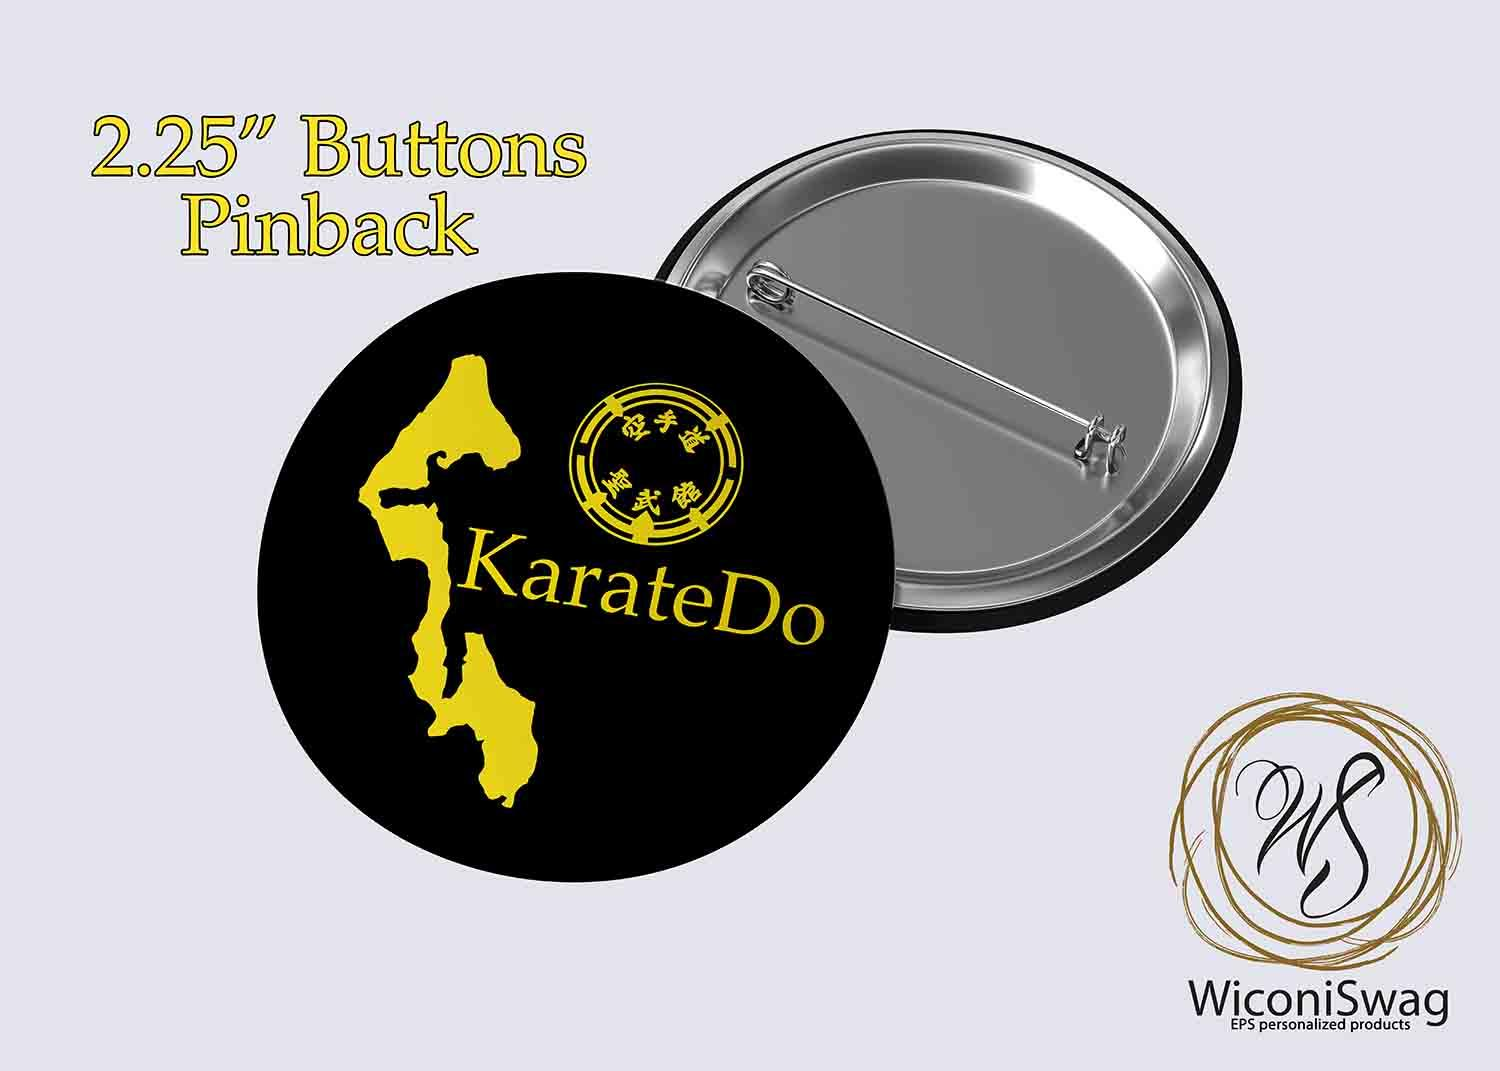 fun buttons, karateDo, oak harbor